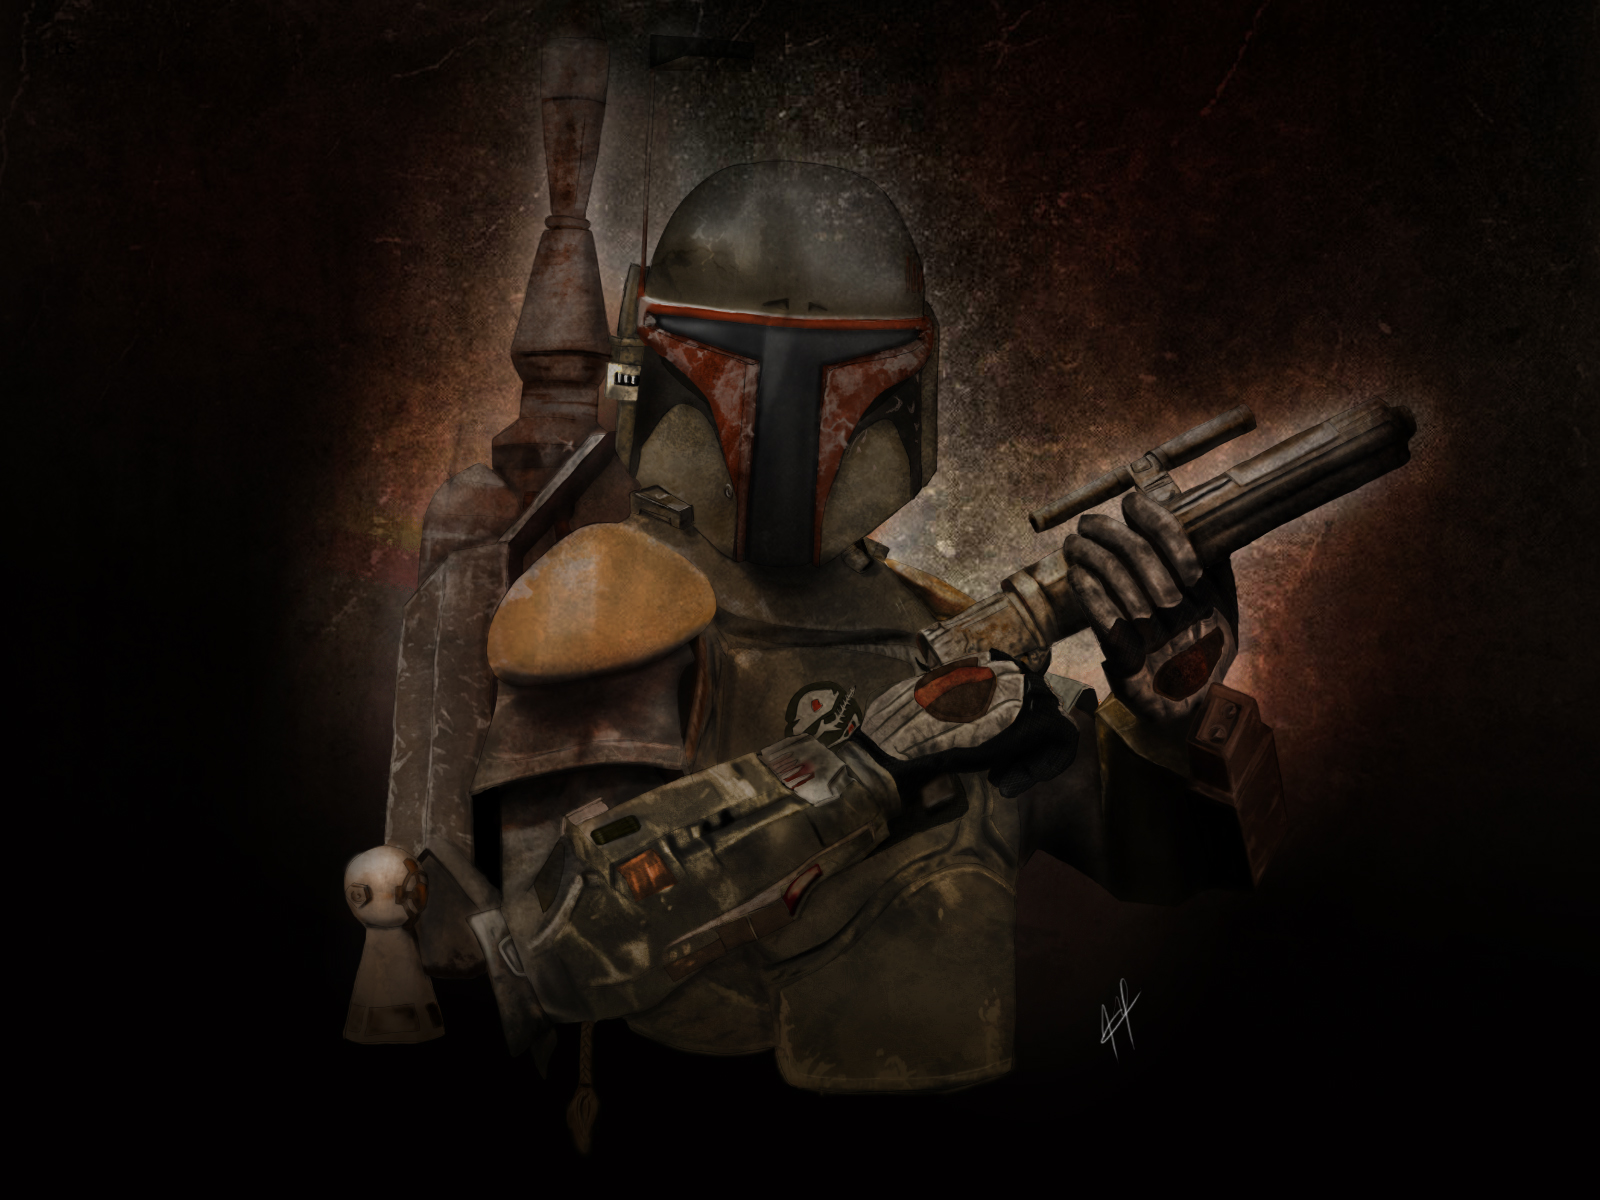 Star Wars Boba Fett Artwork